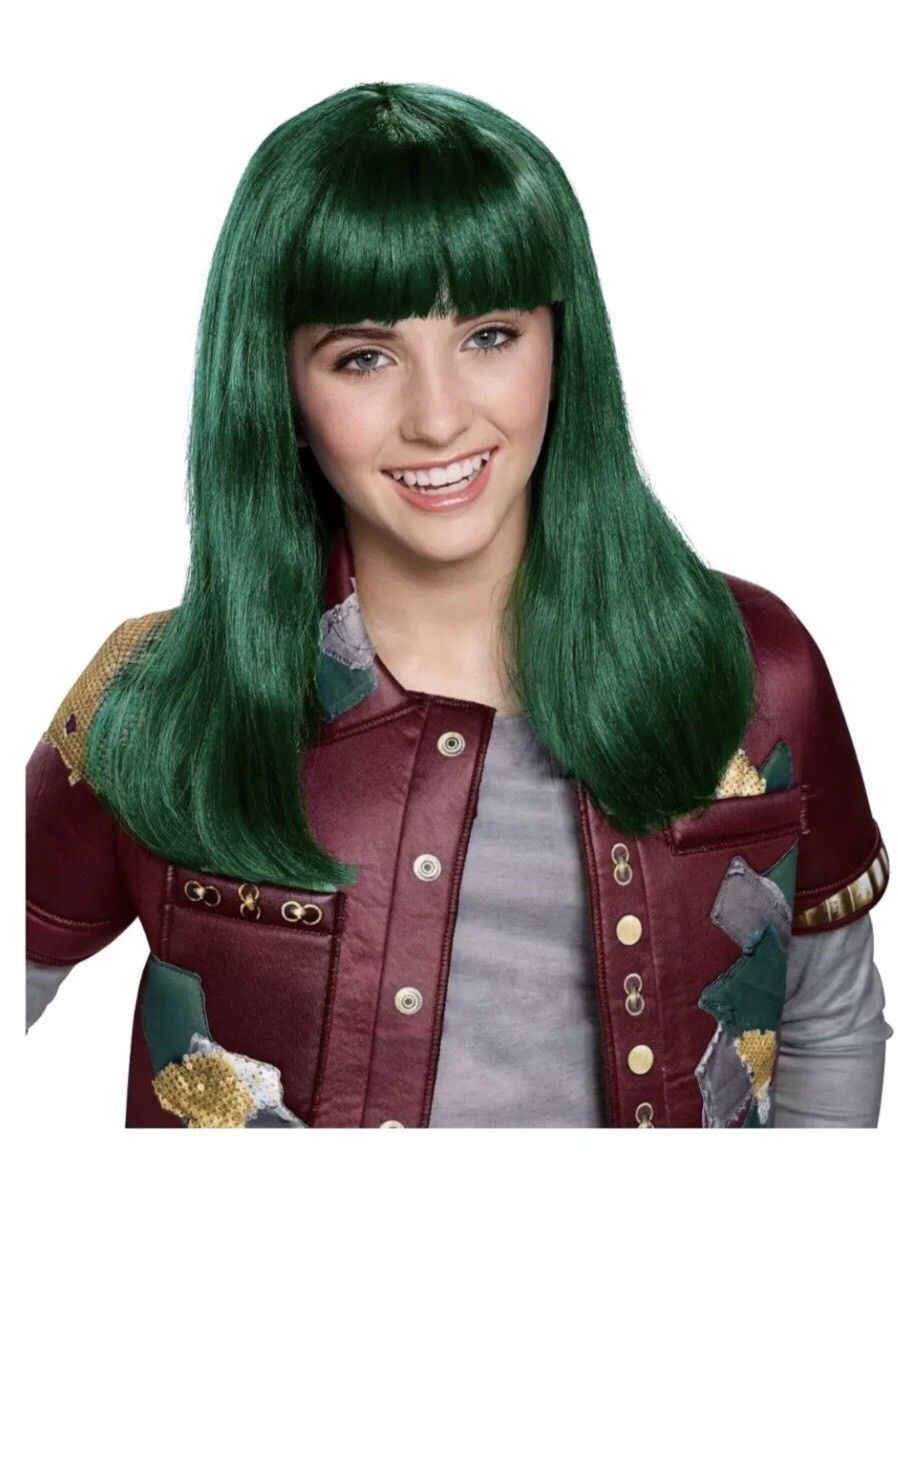 14 99 Girls Disney Zombies Zoey Eliza Wig Halloween Costume Girls Disney Zombies Zoey Eliza Ha Halloween Costume Wigs Halloween Girl Costume Wigs